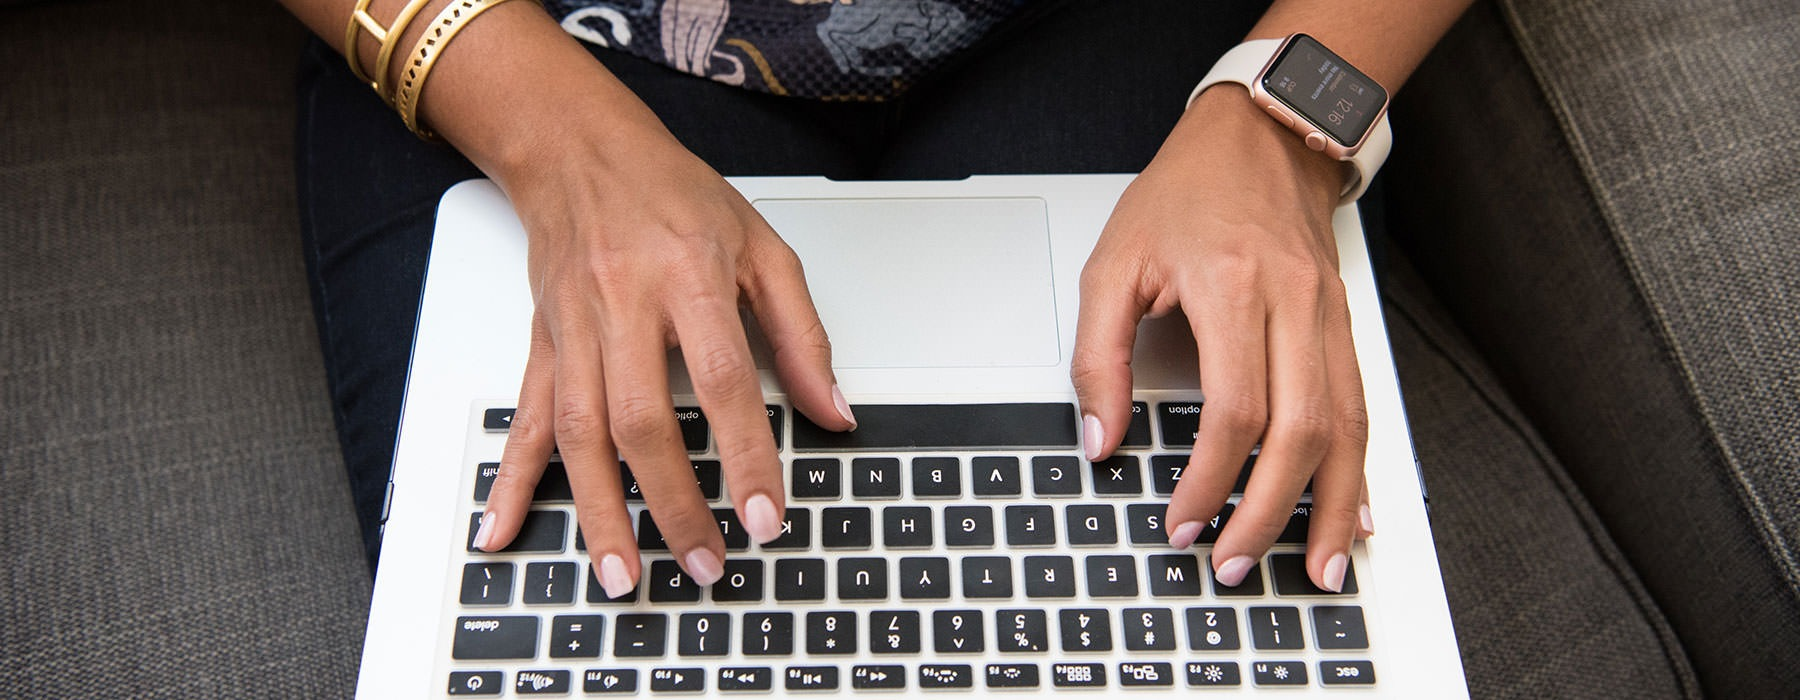 lifestyle image of a person typing on their laptop